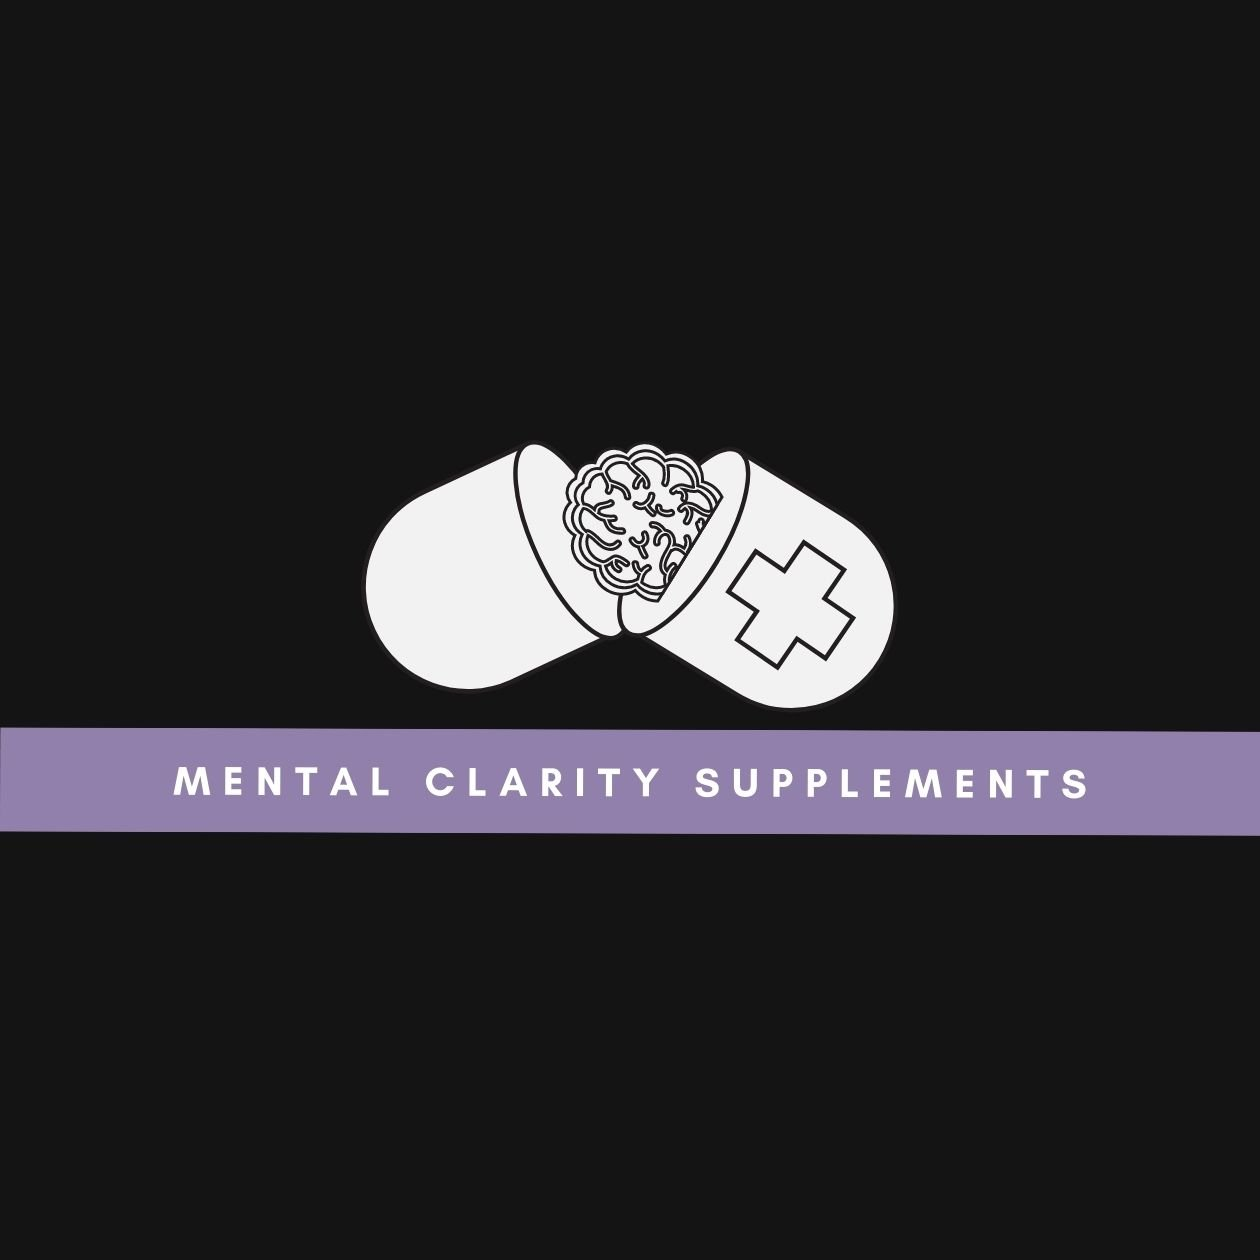 Mental clarity supplements: an illustration